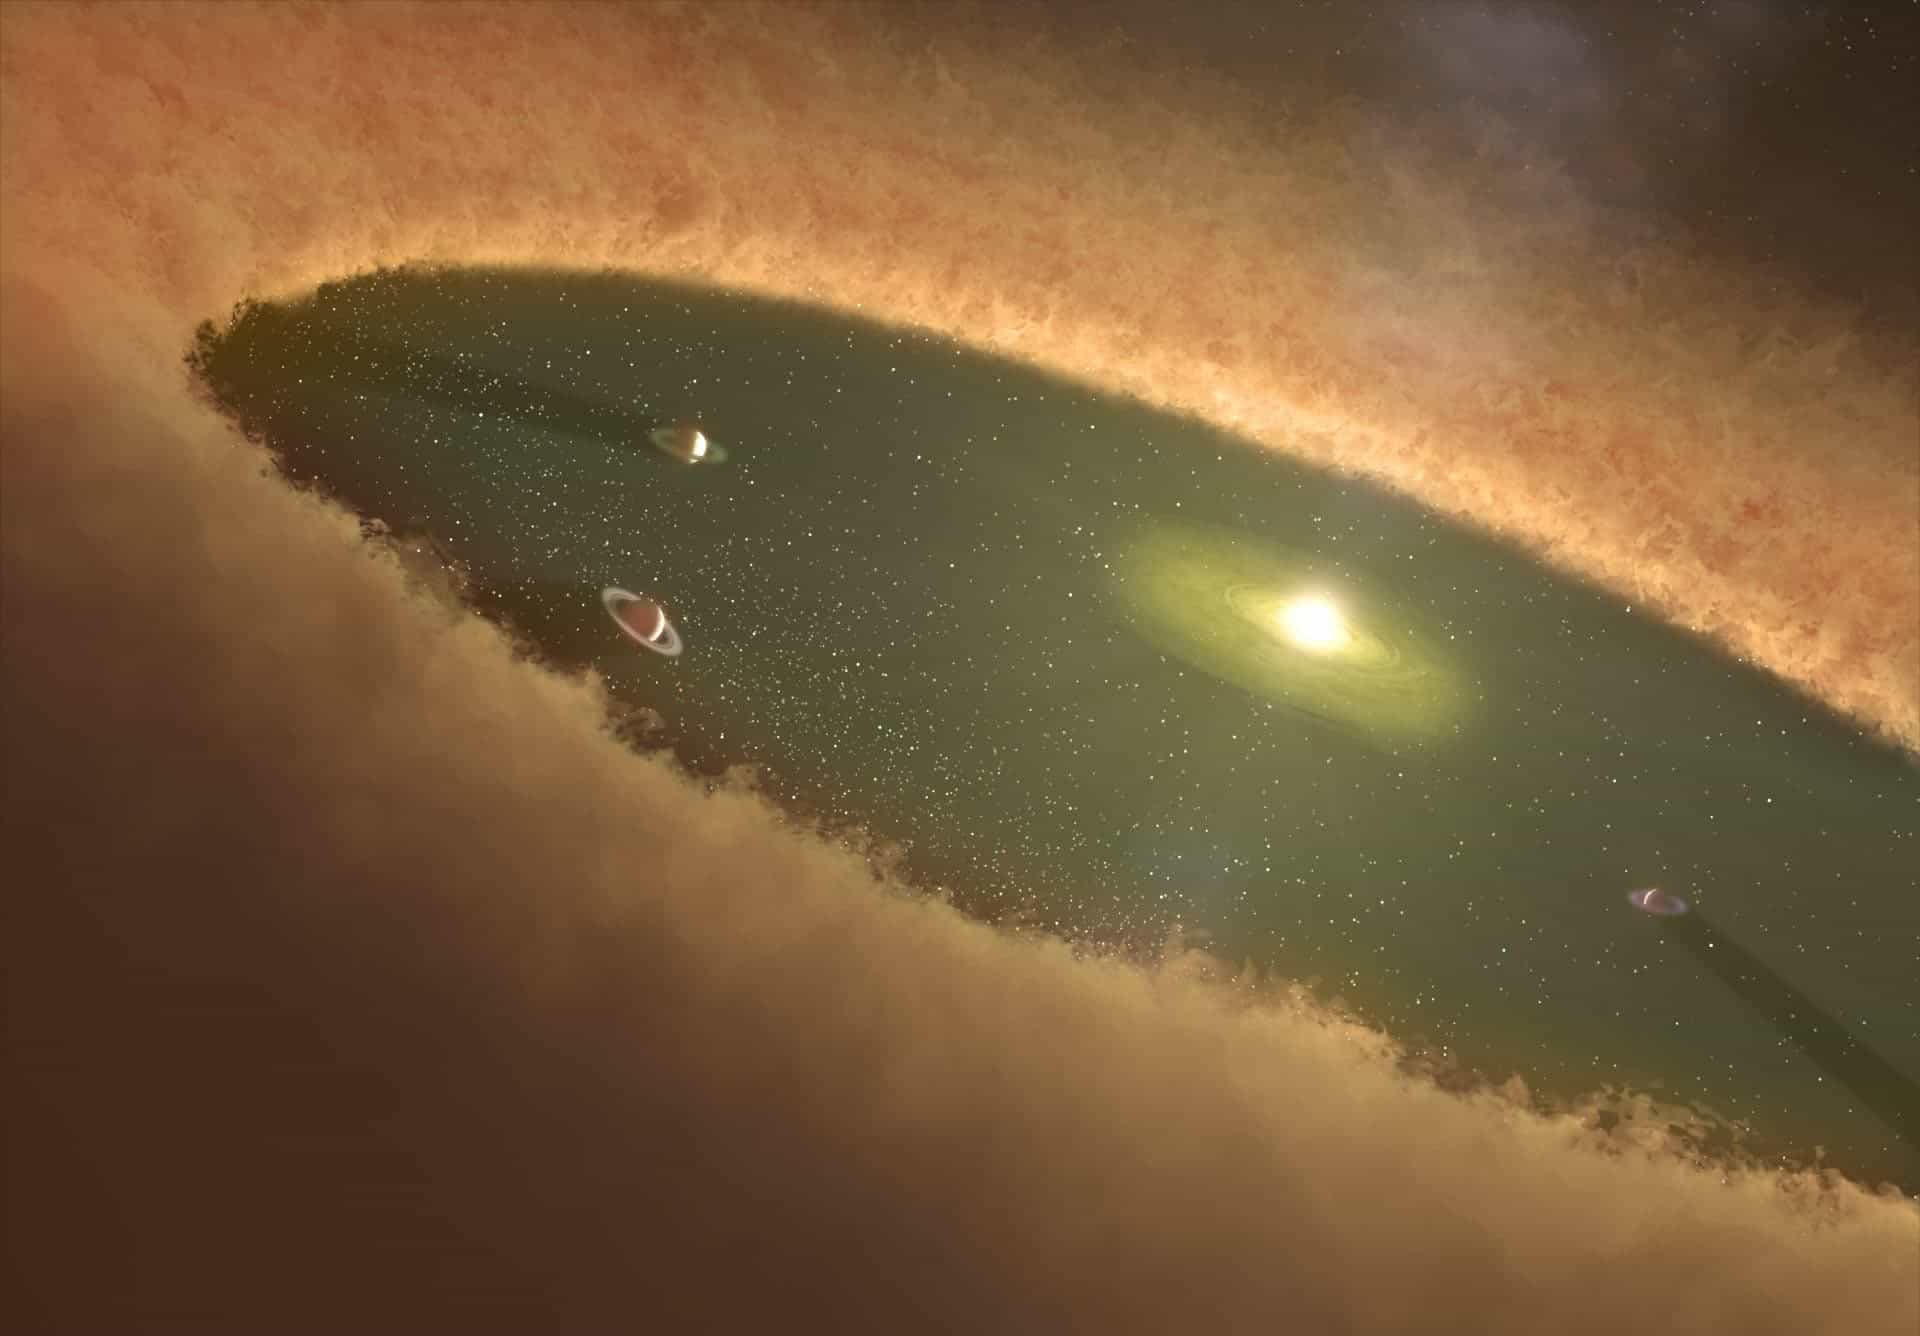 Study finds early interstellar dust that originated the planets